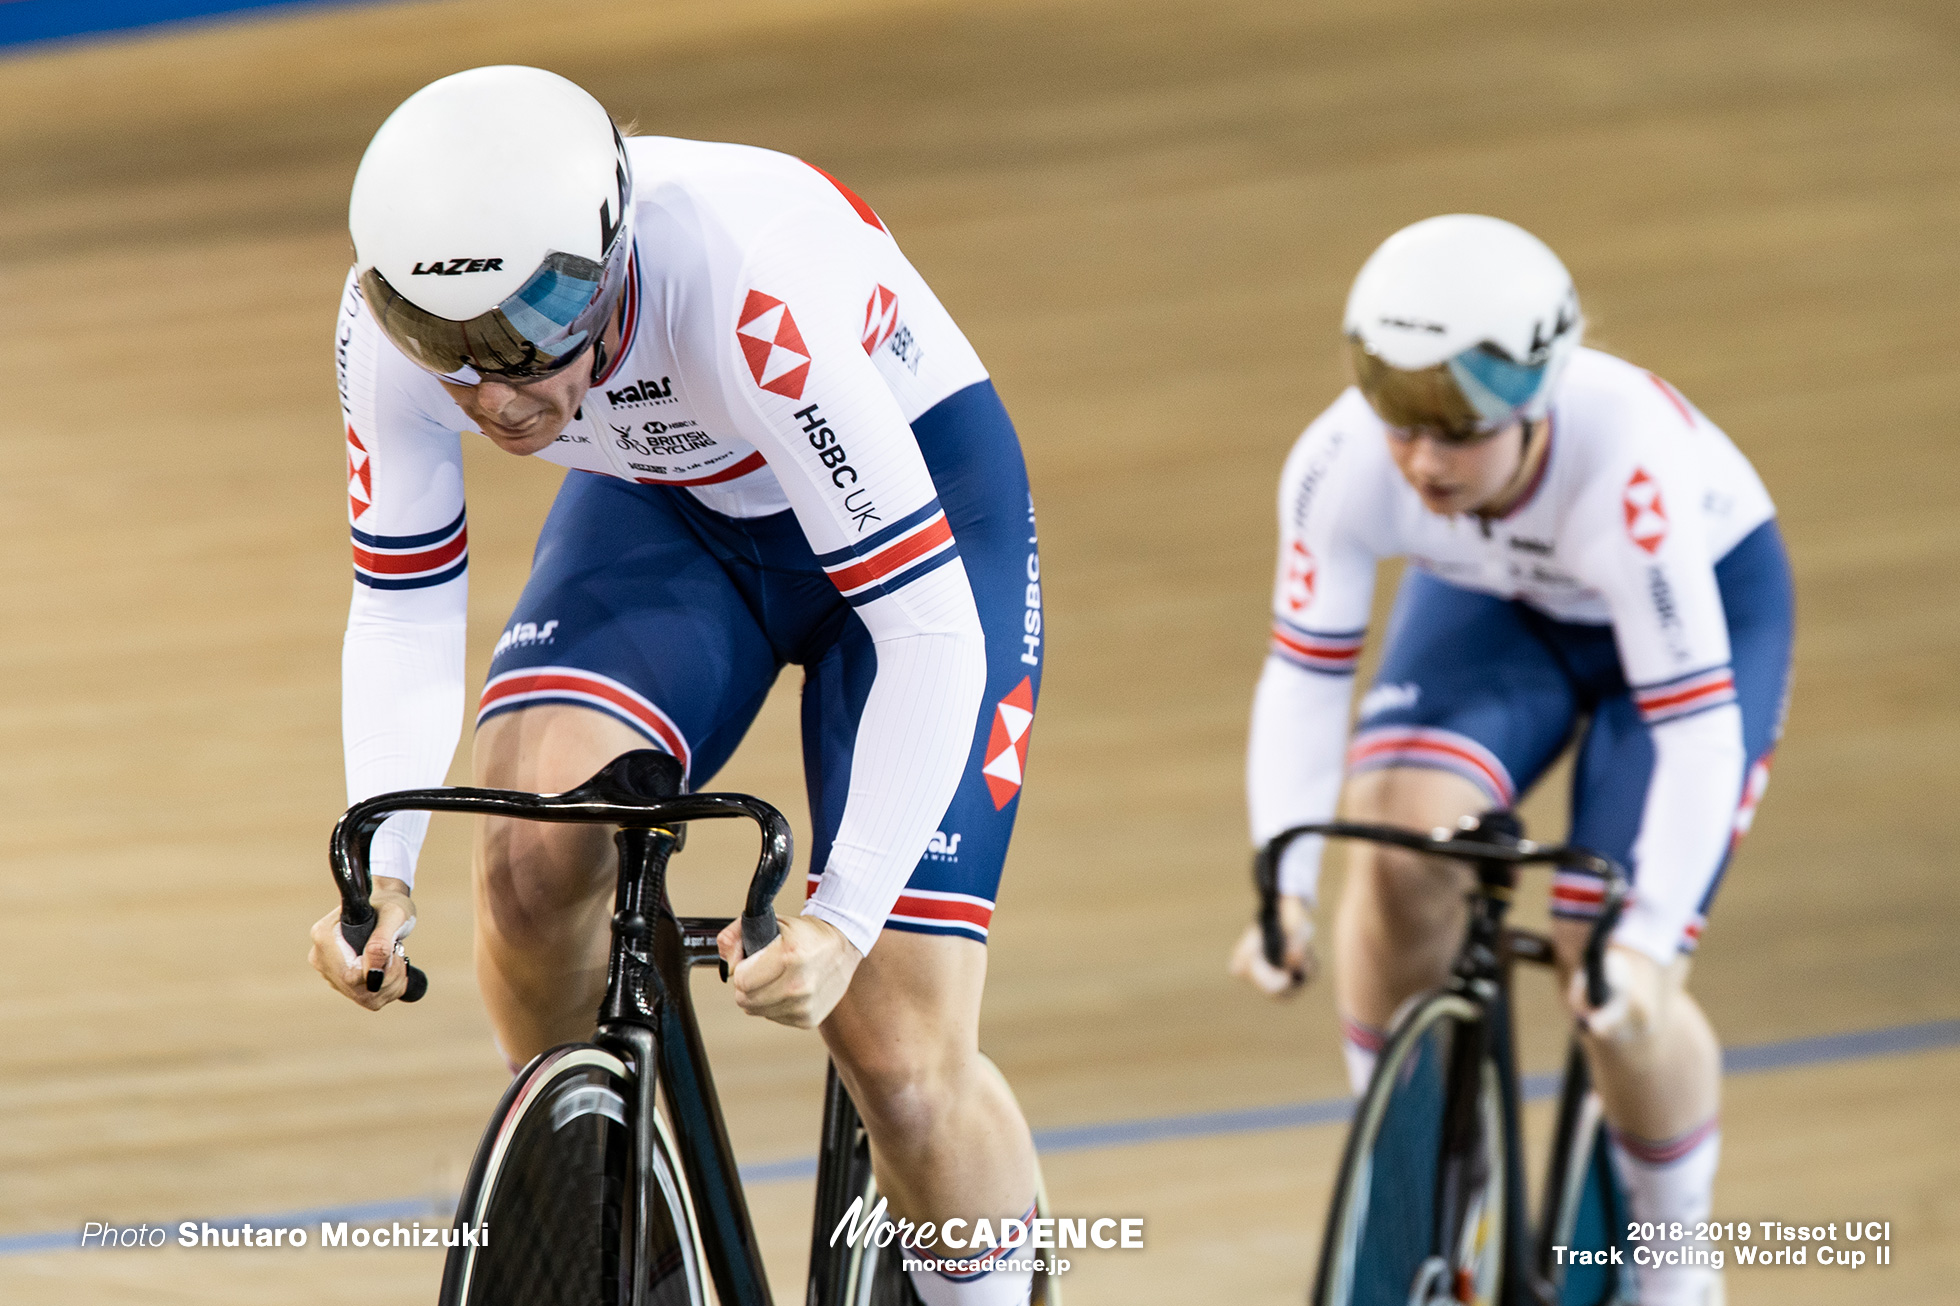 2018-2019 Tissot UCI Track Cycling World Cup II Women's Team Sprint